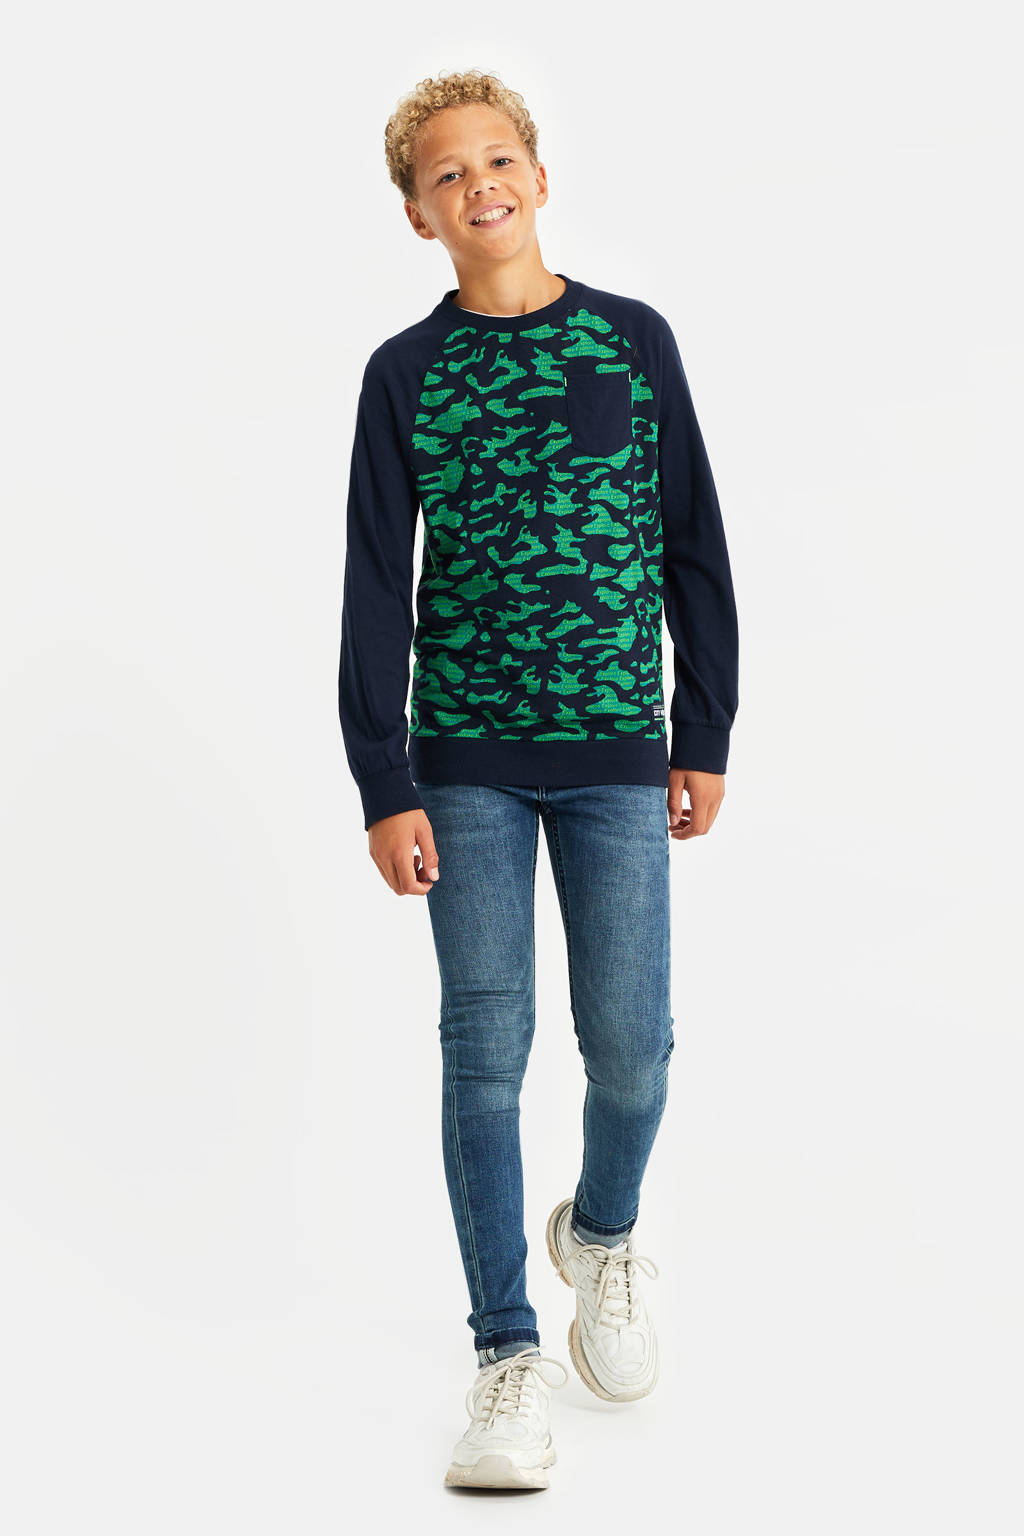 WE Fashion regular fit sweater met all over print donkerblauw/groen, Donkerblauw/groen